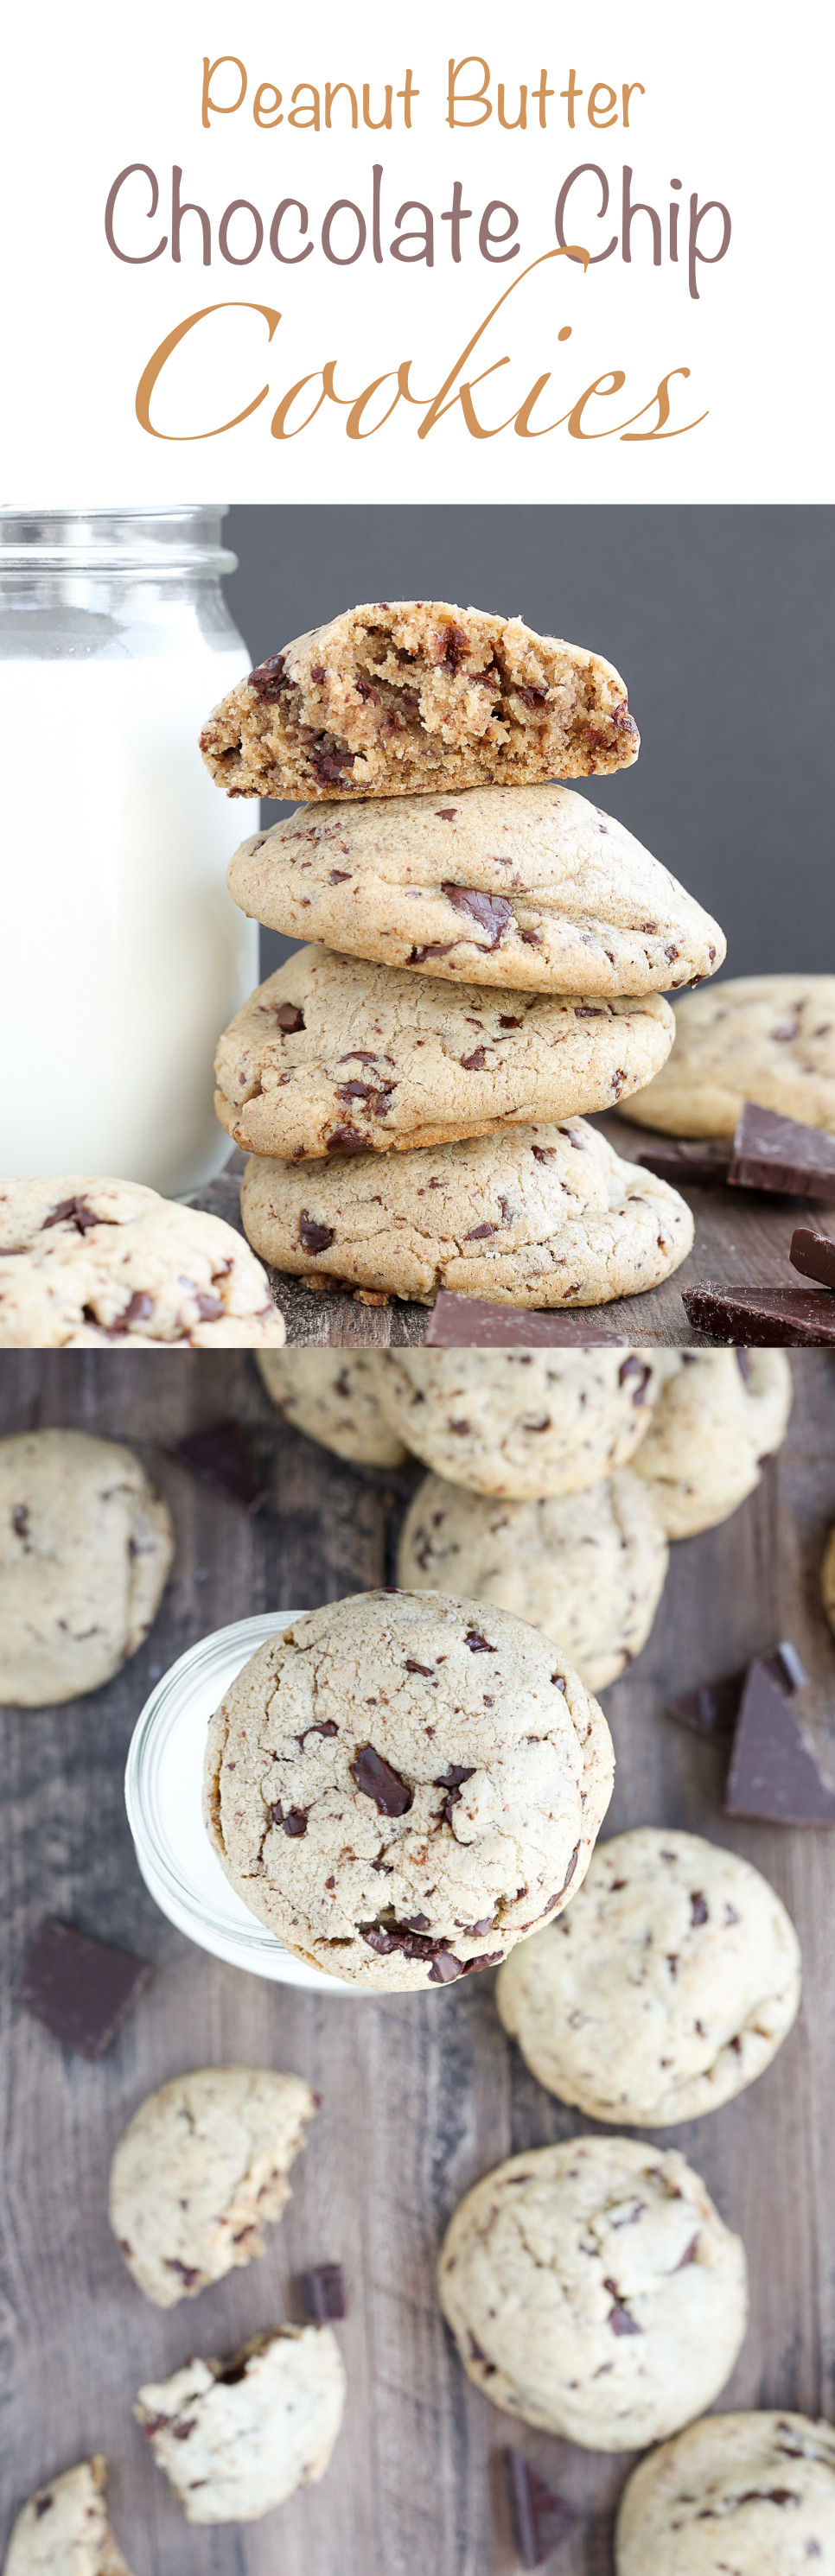 Chocolate Chip Peanut Butter Cookies  Chewy Peanut Butter Chocolate Chip Cookies American